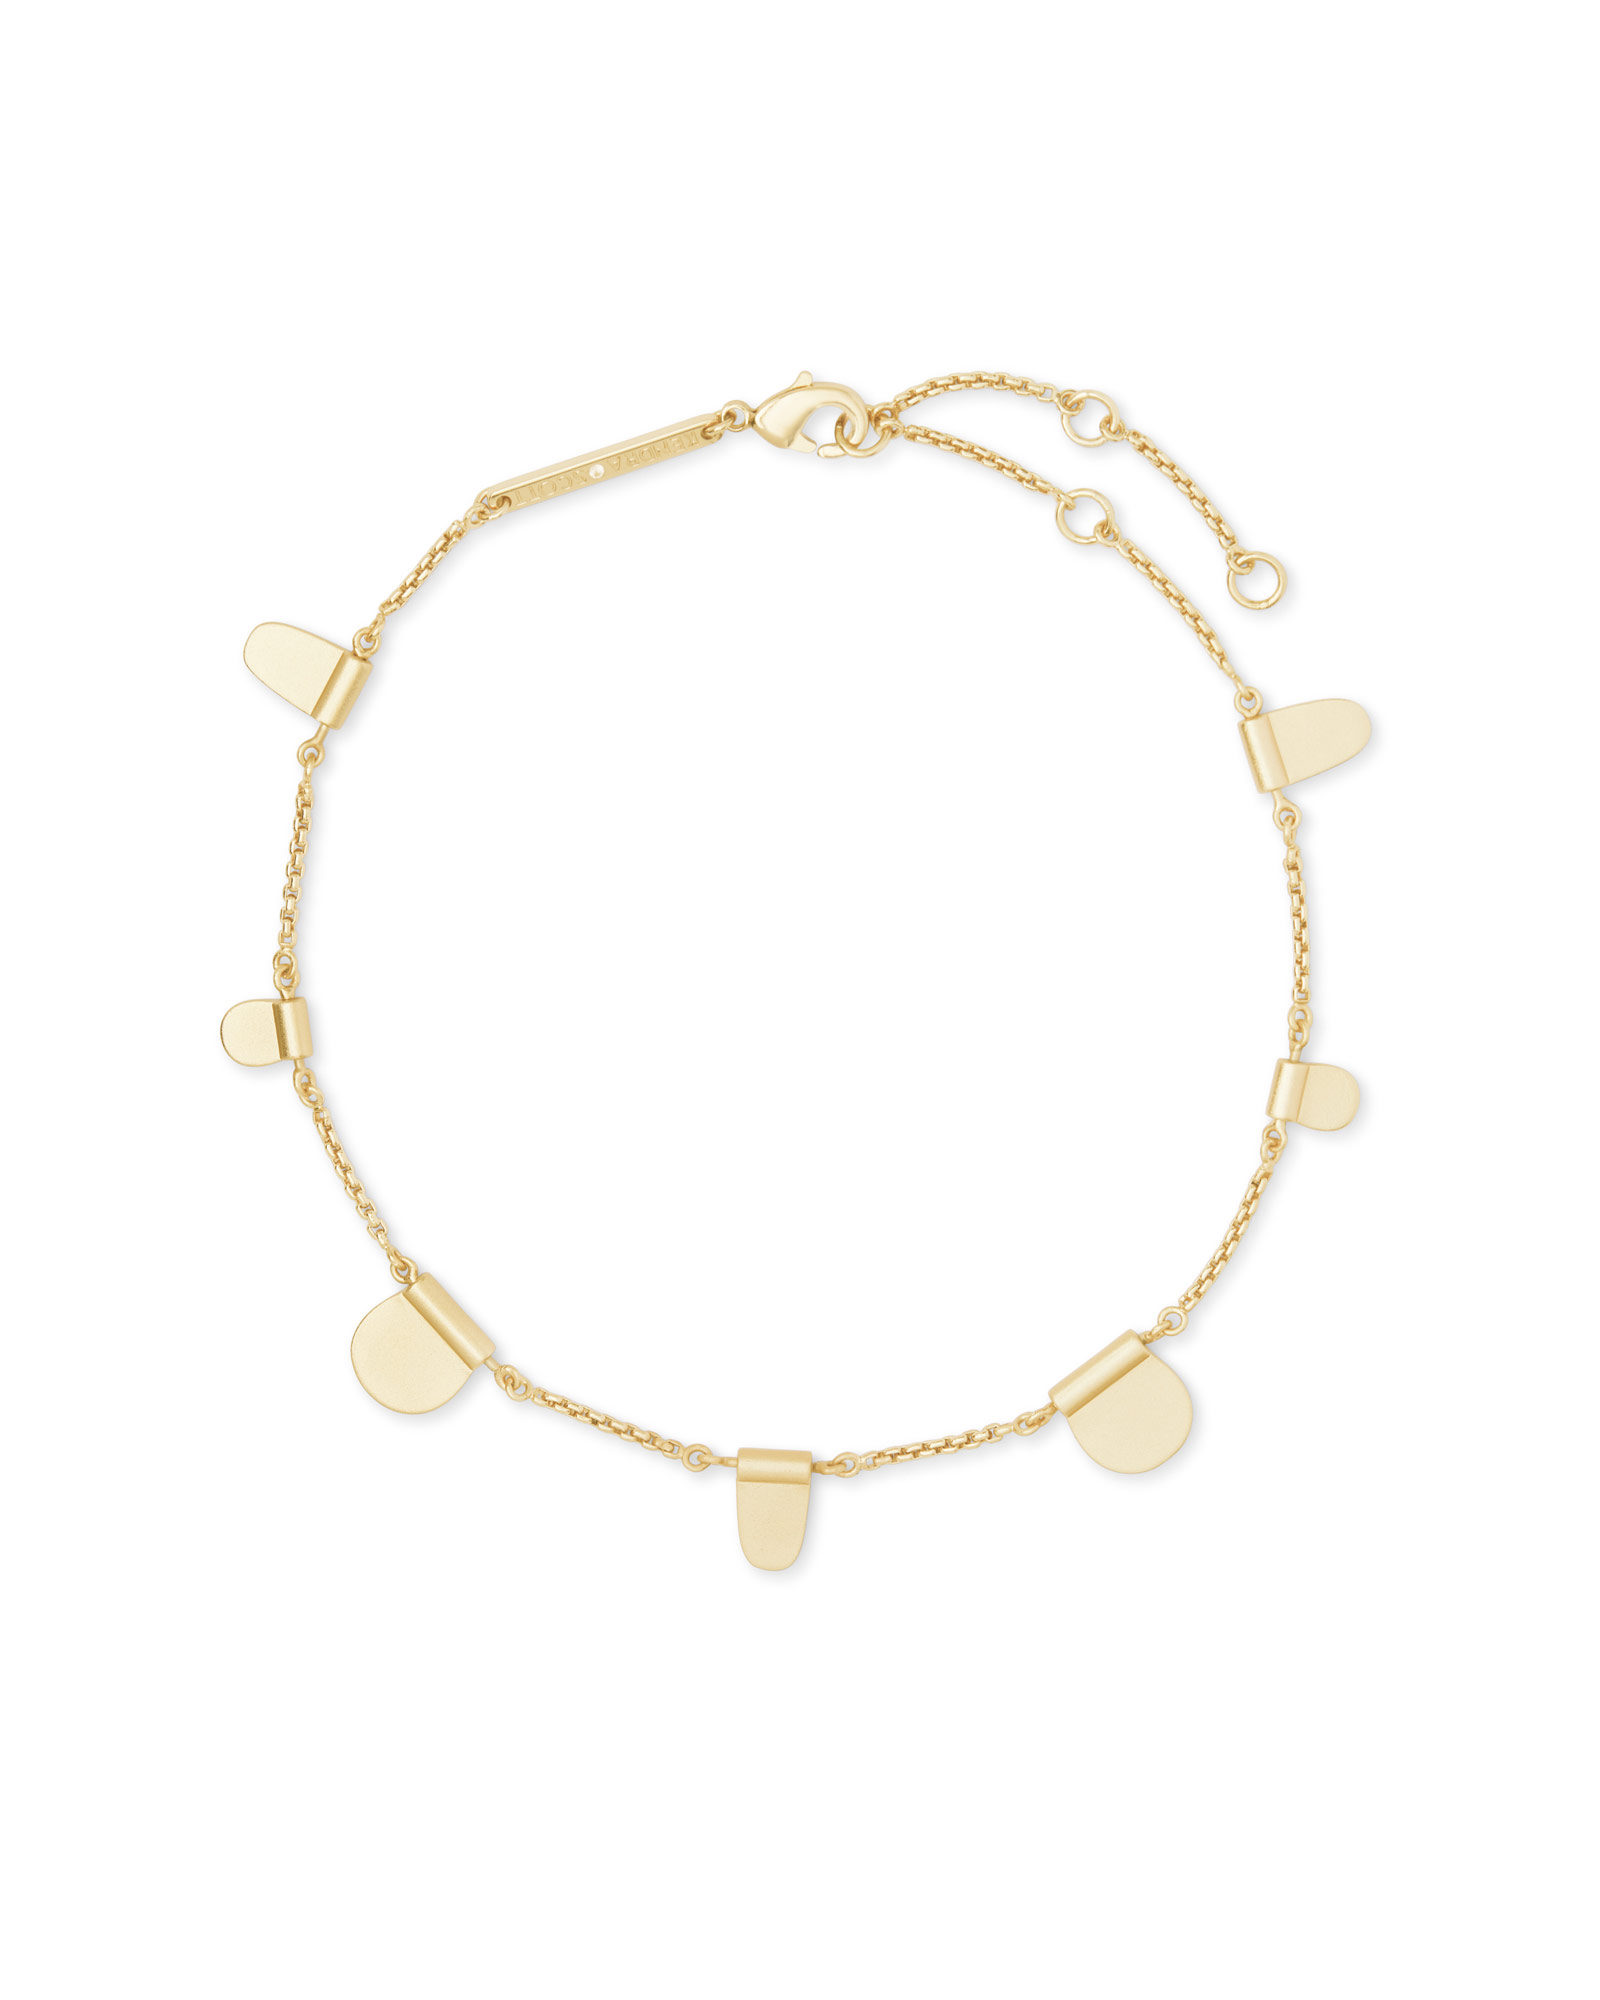 Tabi Anklet in Gold